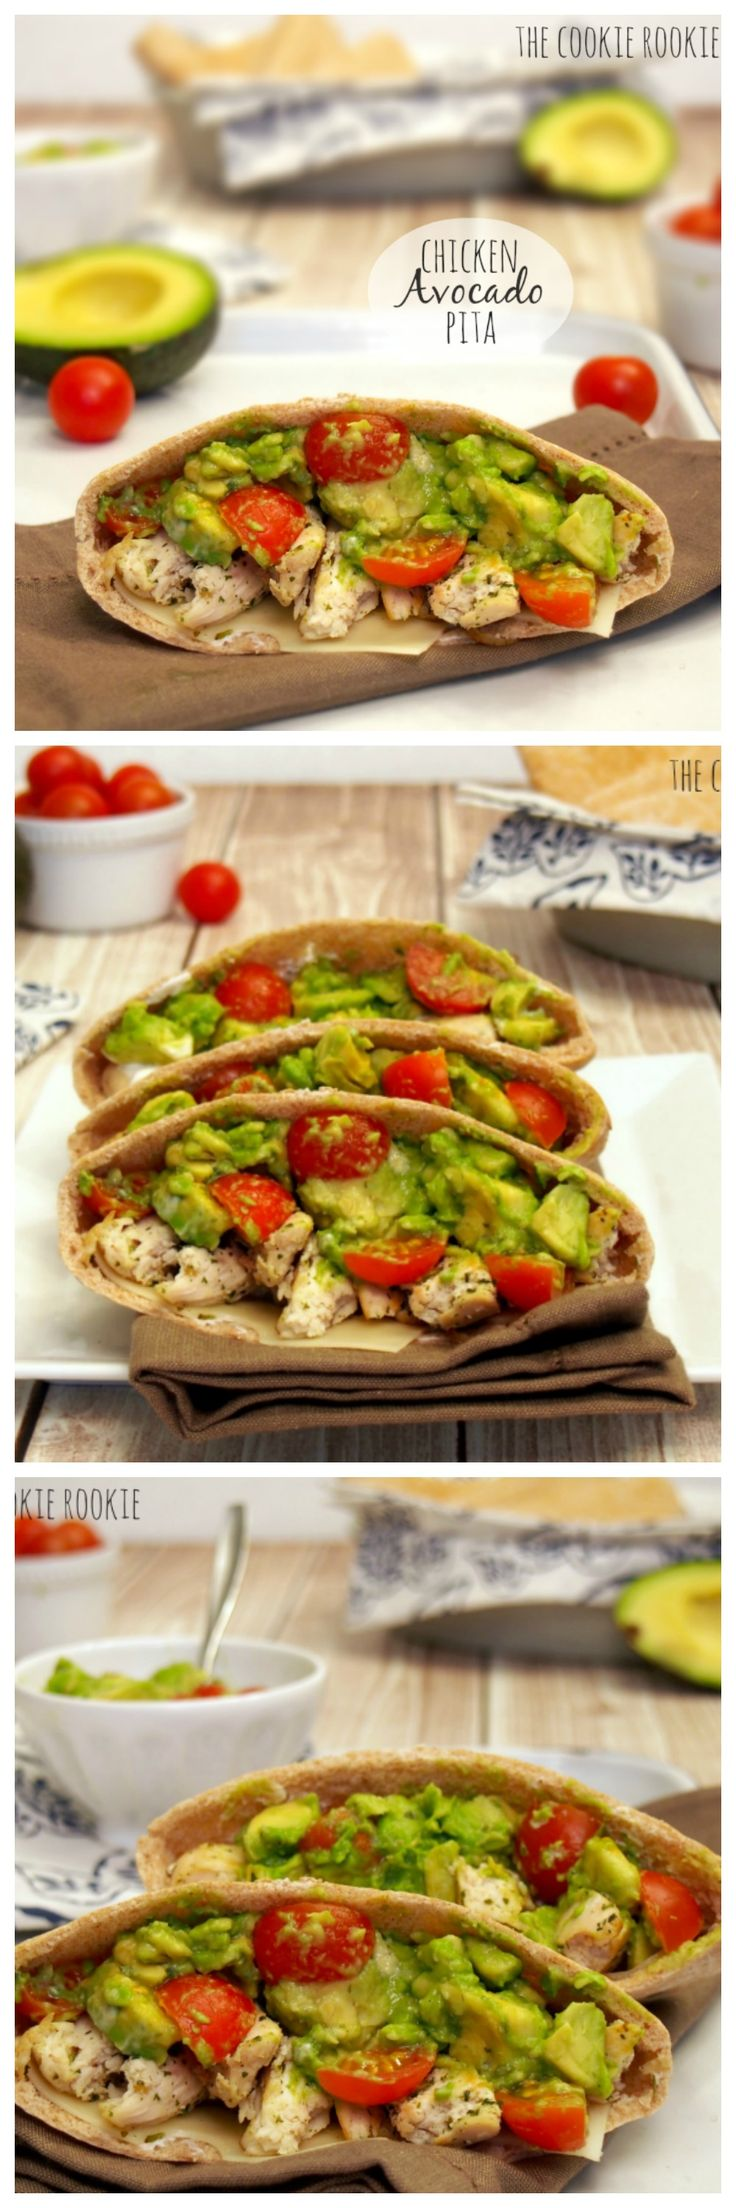 Healthy Grilled Chicken Avocado Pitas